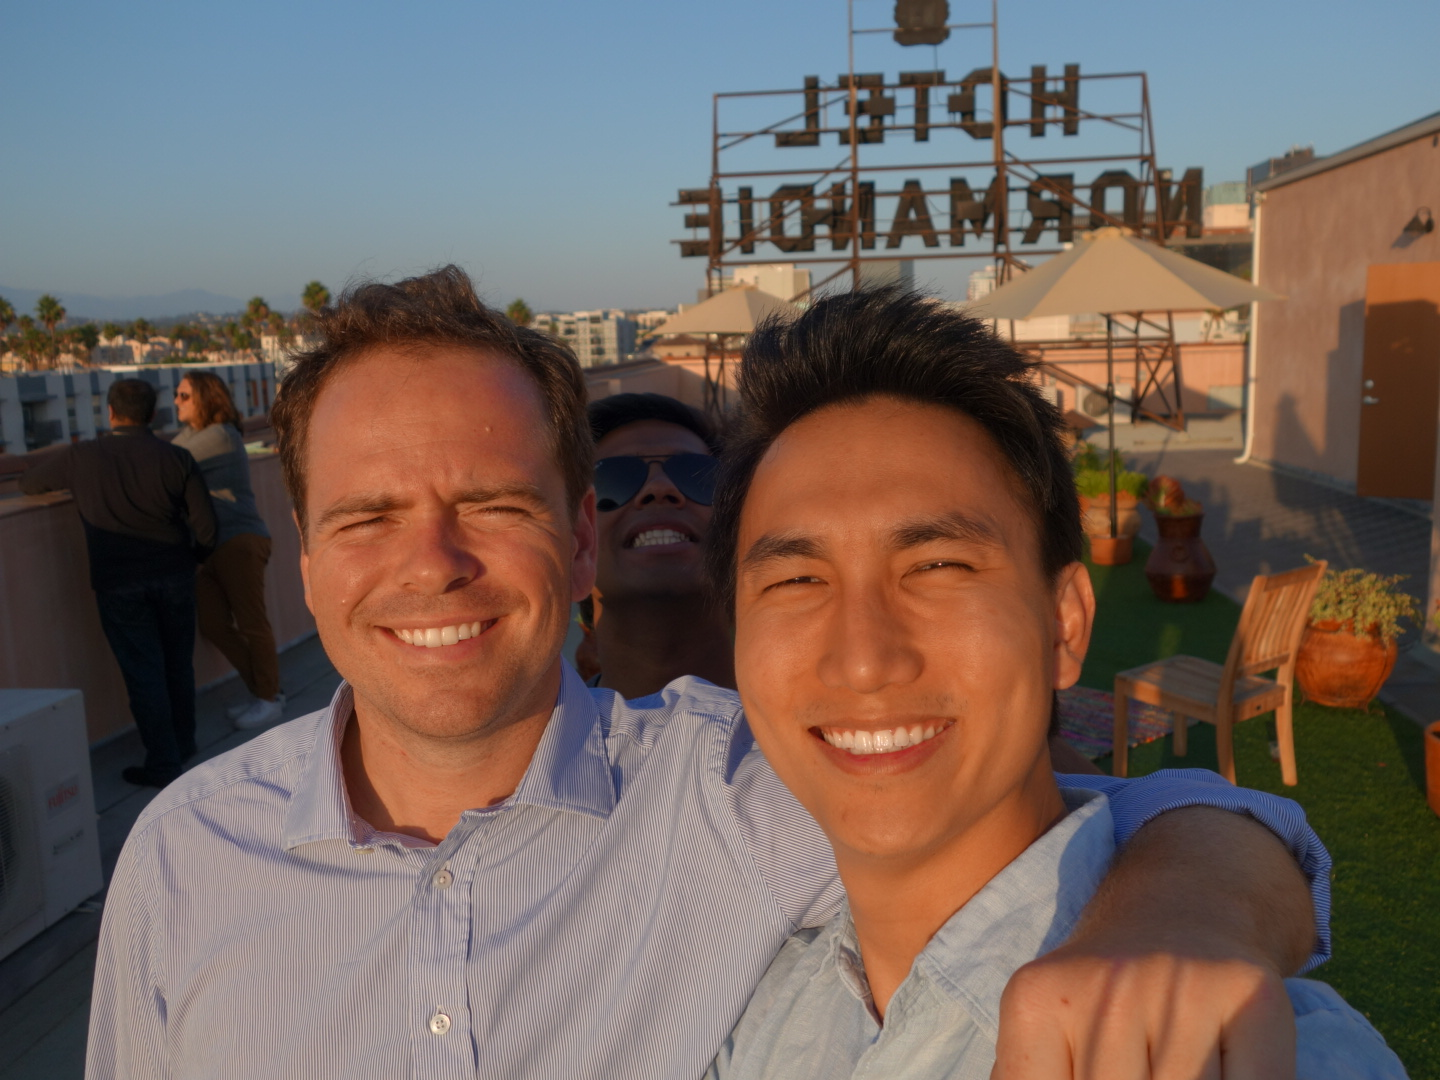 Fulbrighter Jarod Yong (right), Malaysia, with Millennial Trains Project Founder and Fulbright U.S. Student Program alumnus Patrick Dowd (left).